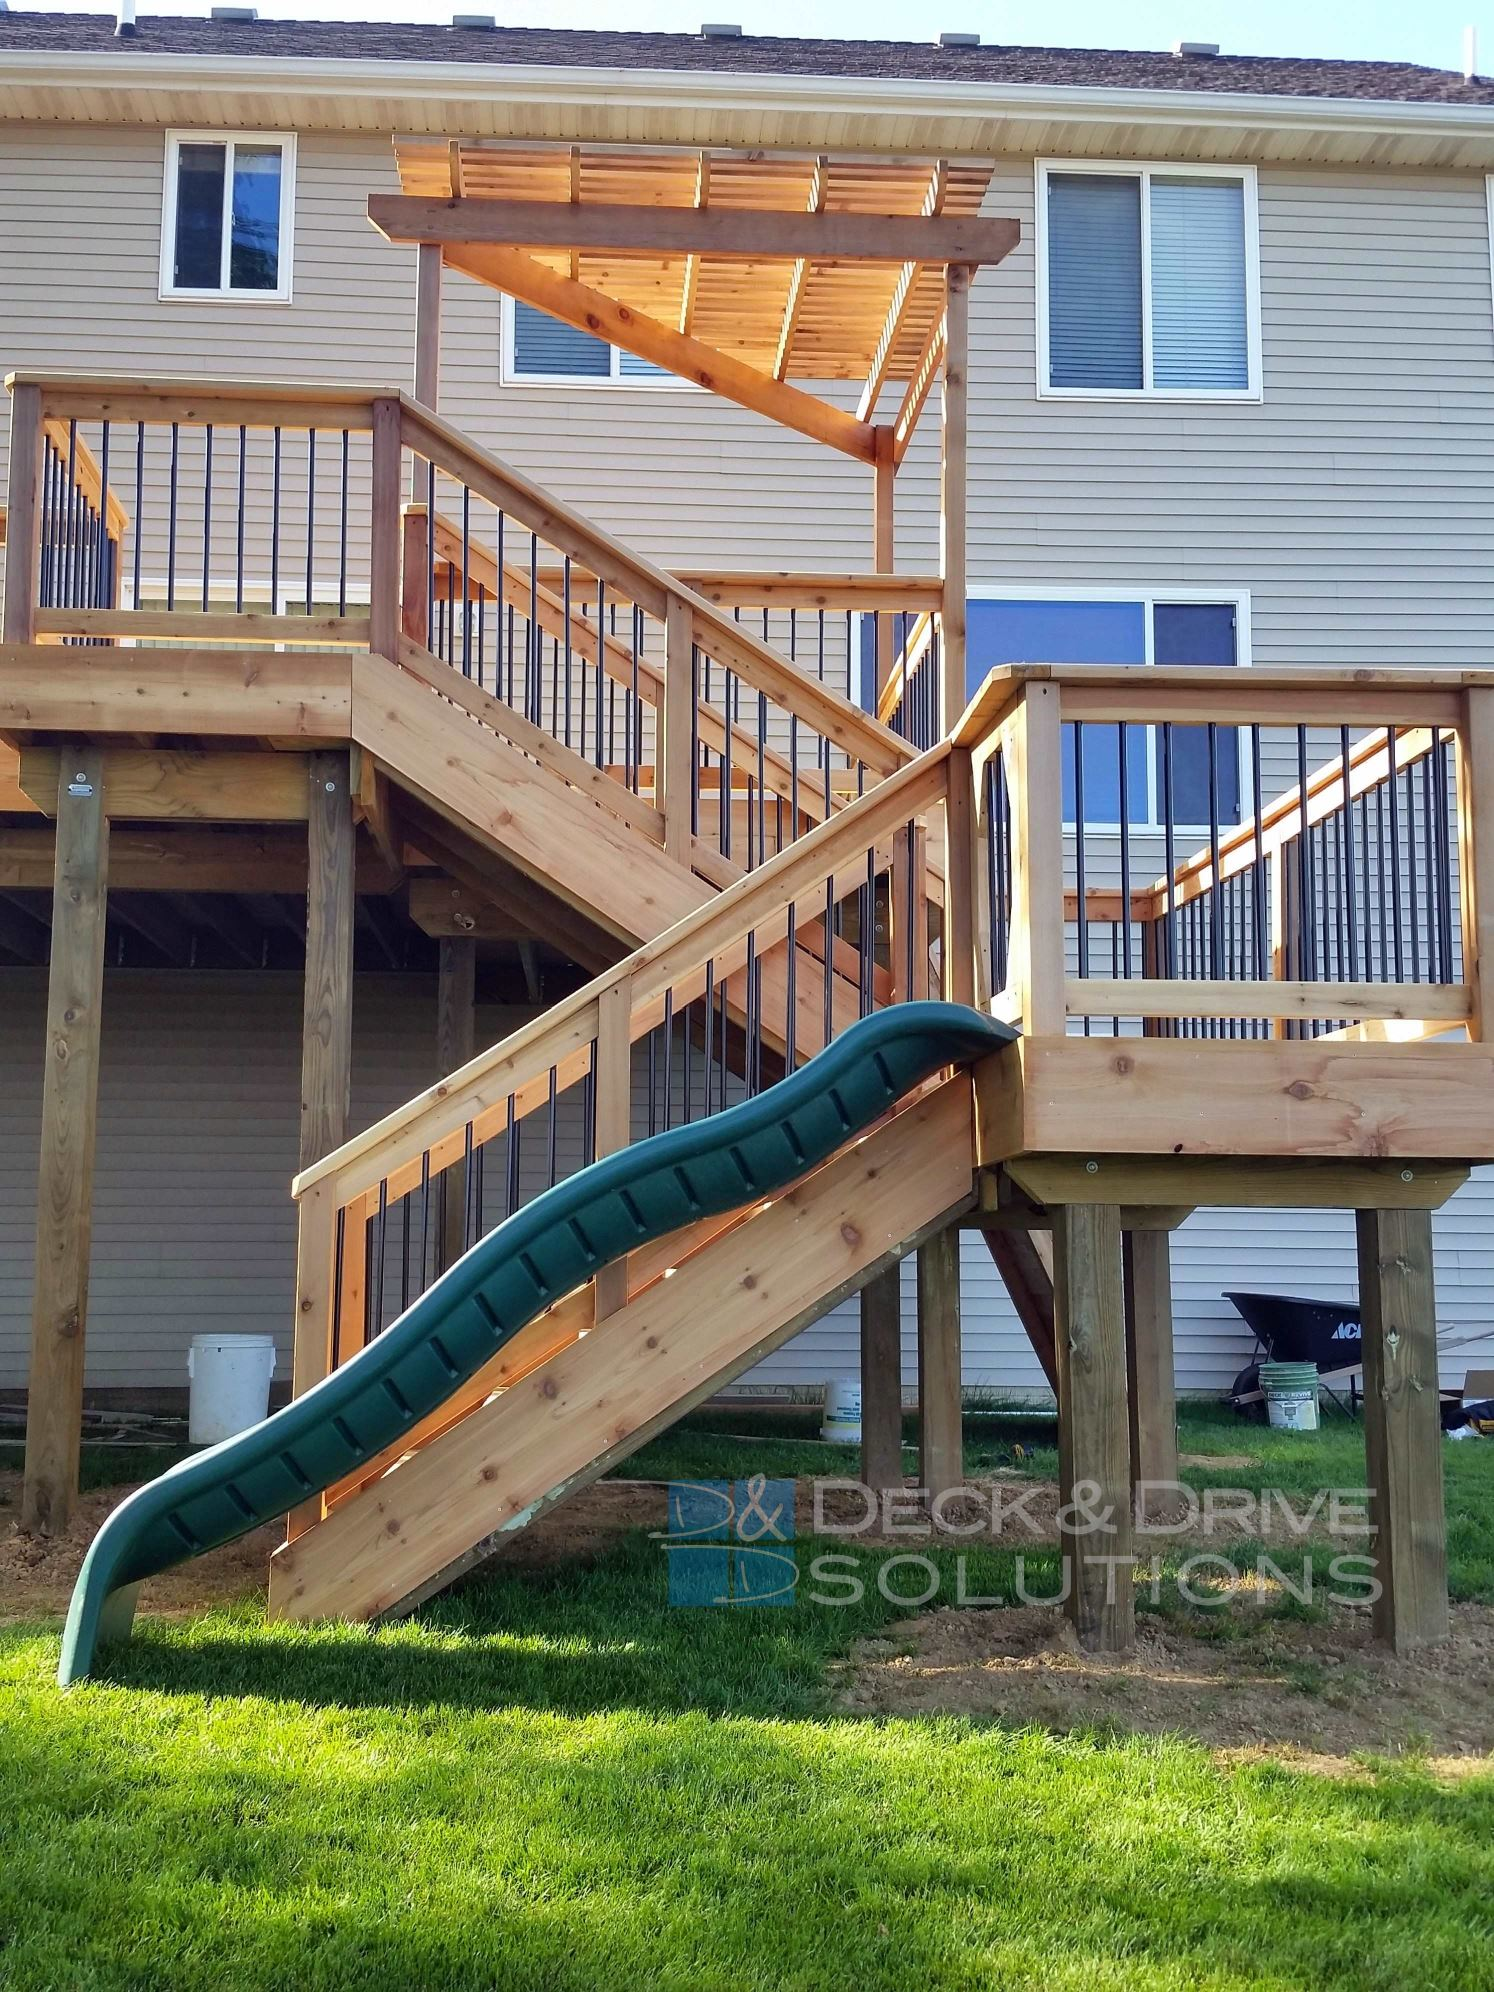 New Cedar Deck With Slide And Rock Wall Des Moines Deck